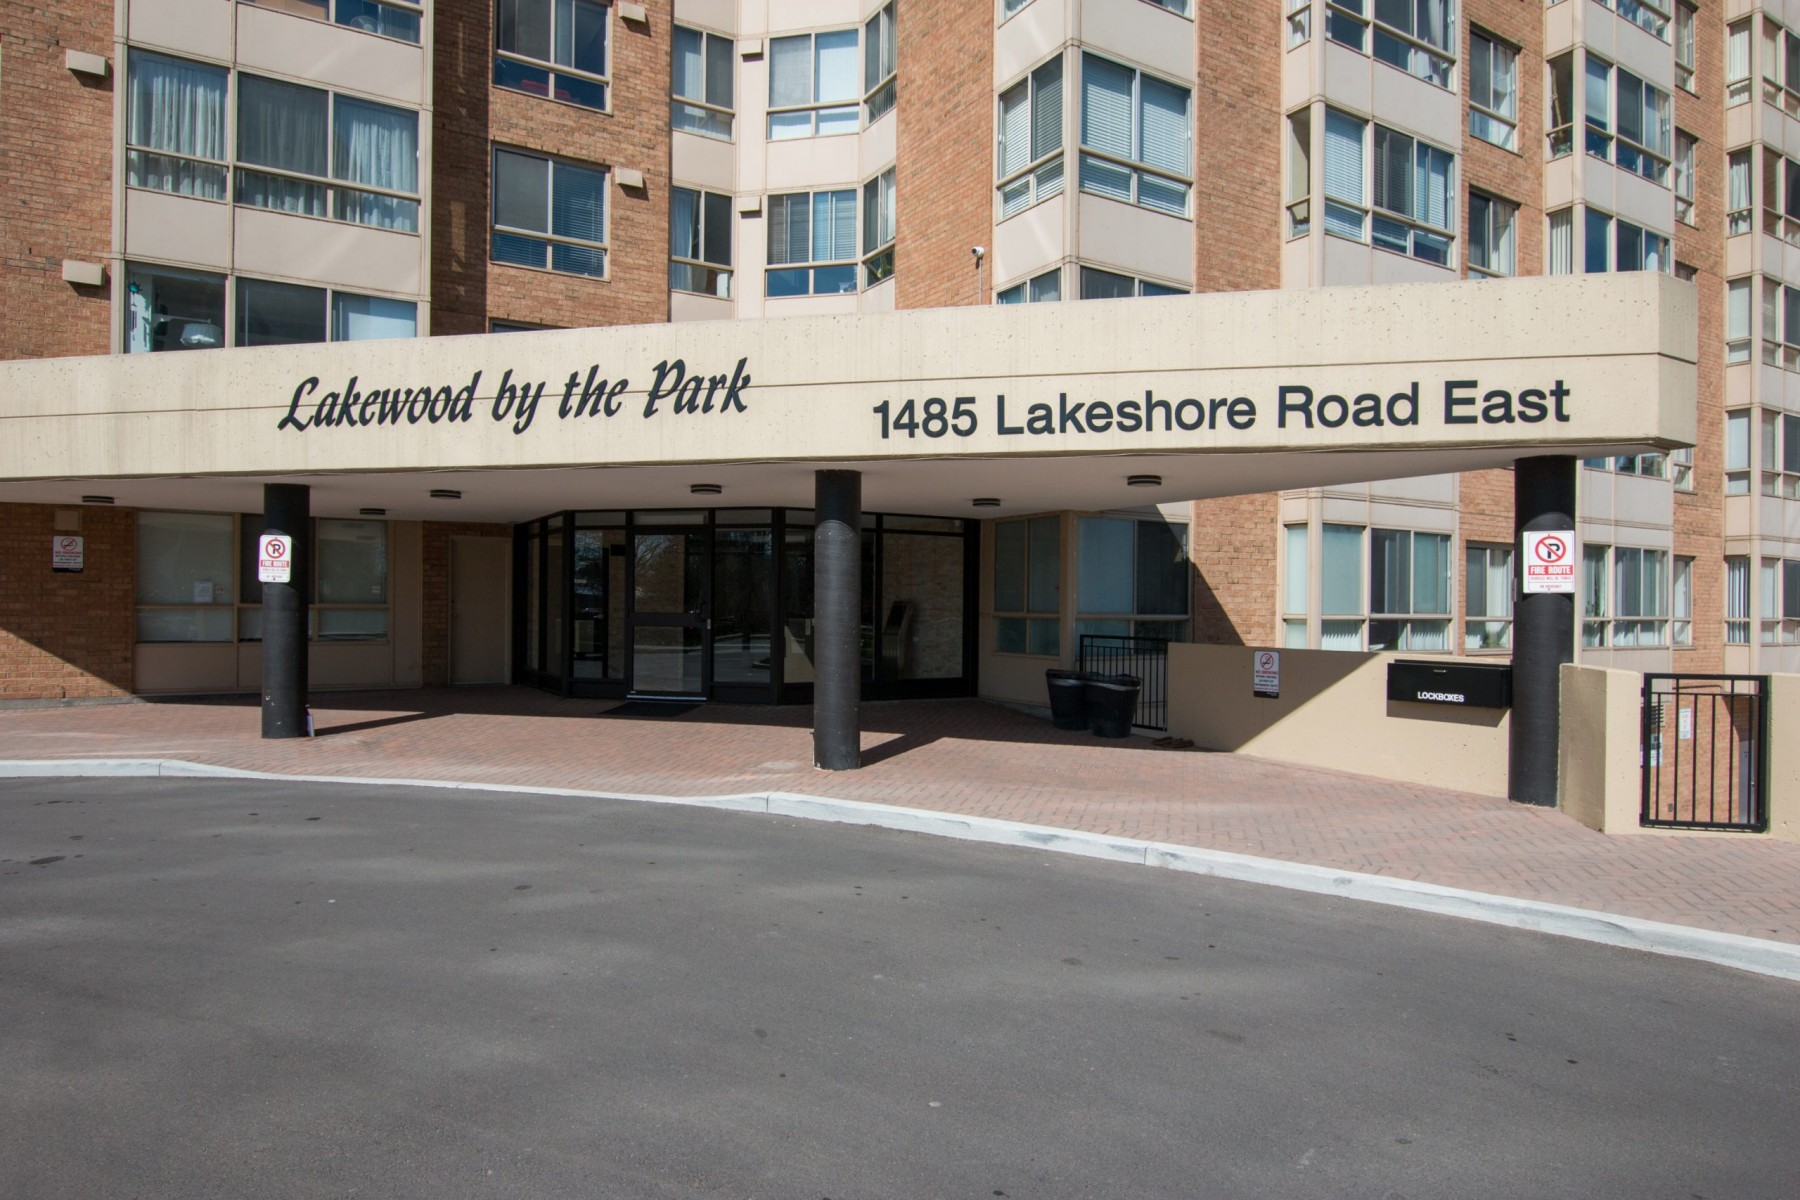 1485 Lakeshore Blvd East - #218